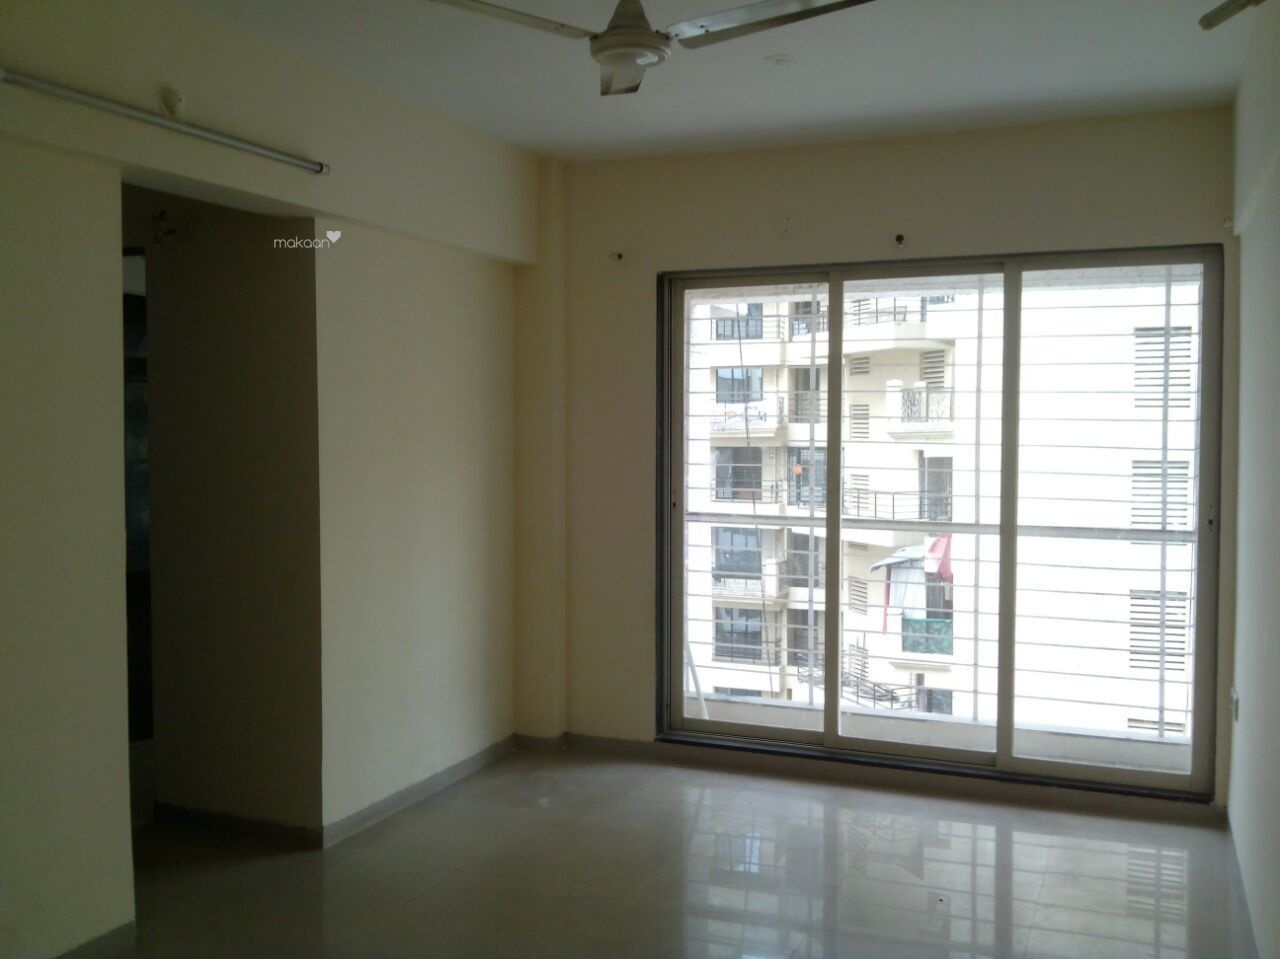 1156 sq ft 2BHK 2BHK+2T (1,156 sq ft) Property By Bhoomi Enterprises In Project, Kharghar